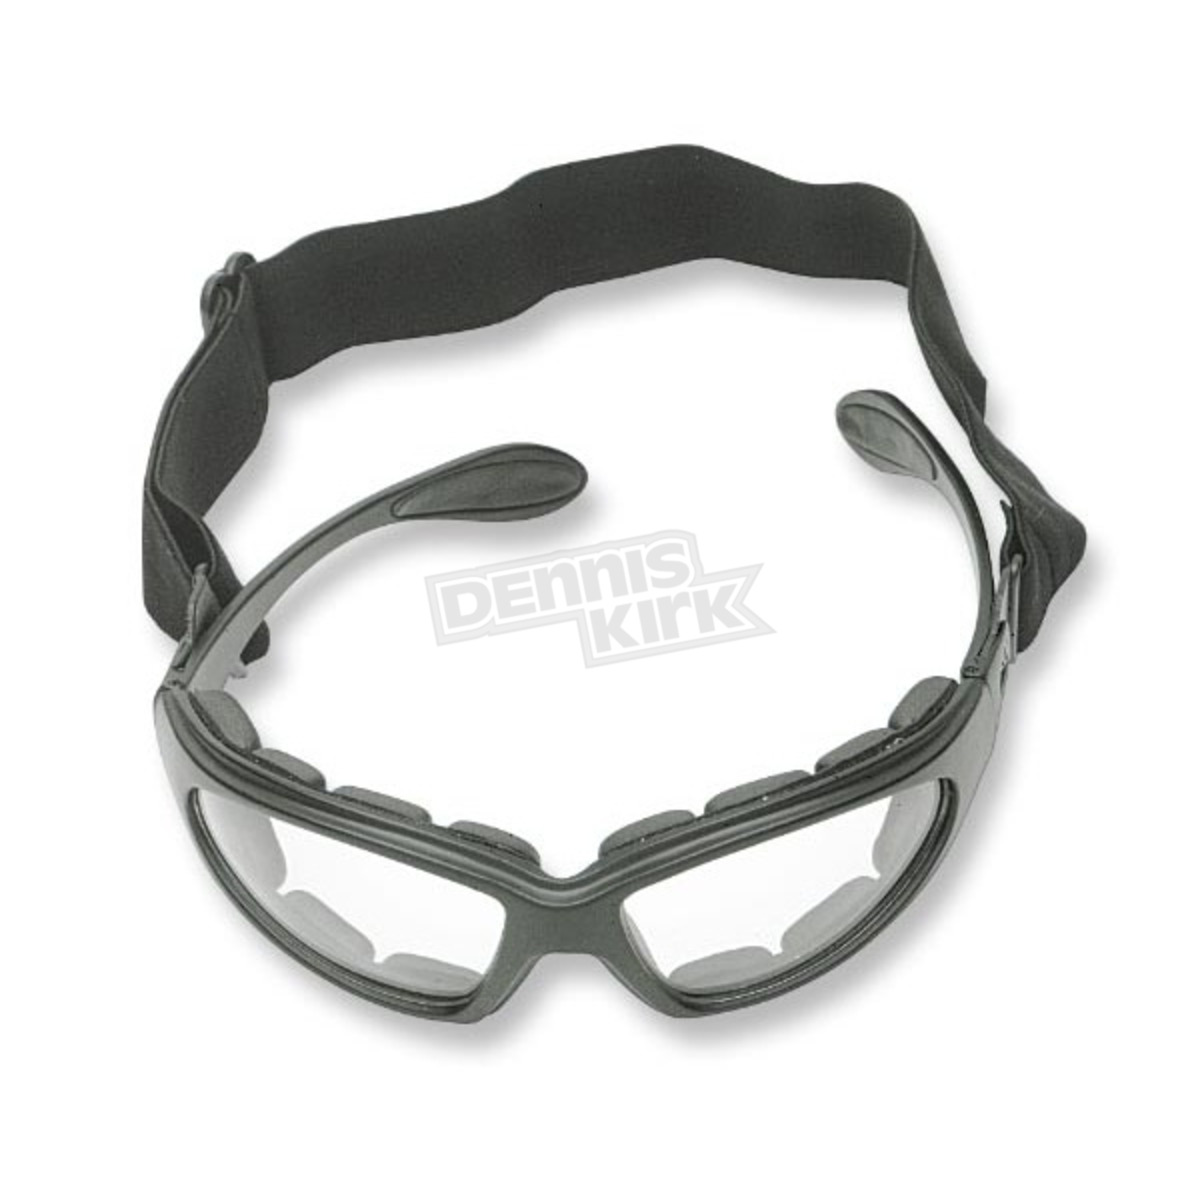 1d11766dfc Bobster GXR Sunglasses Goggles with Clear Lens - GXR001C Harley ...